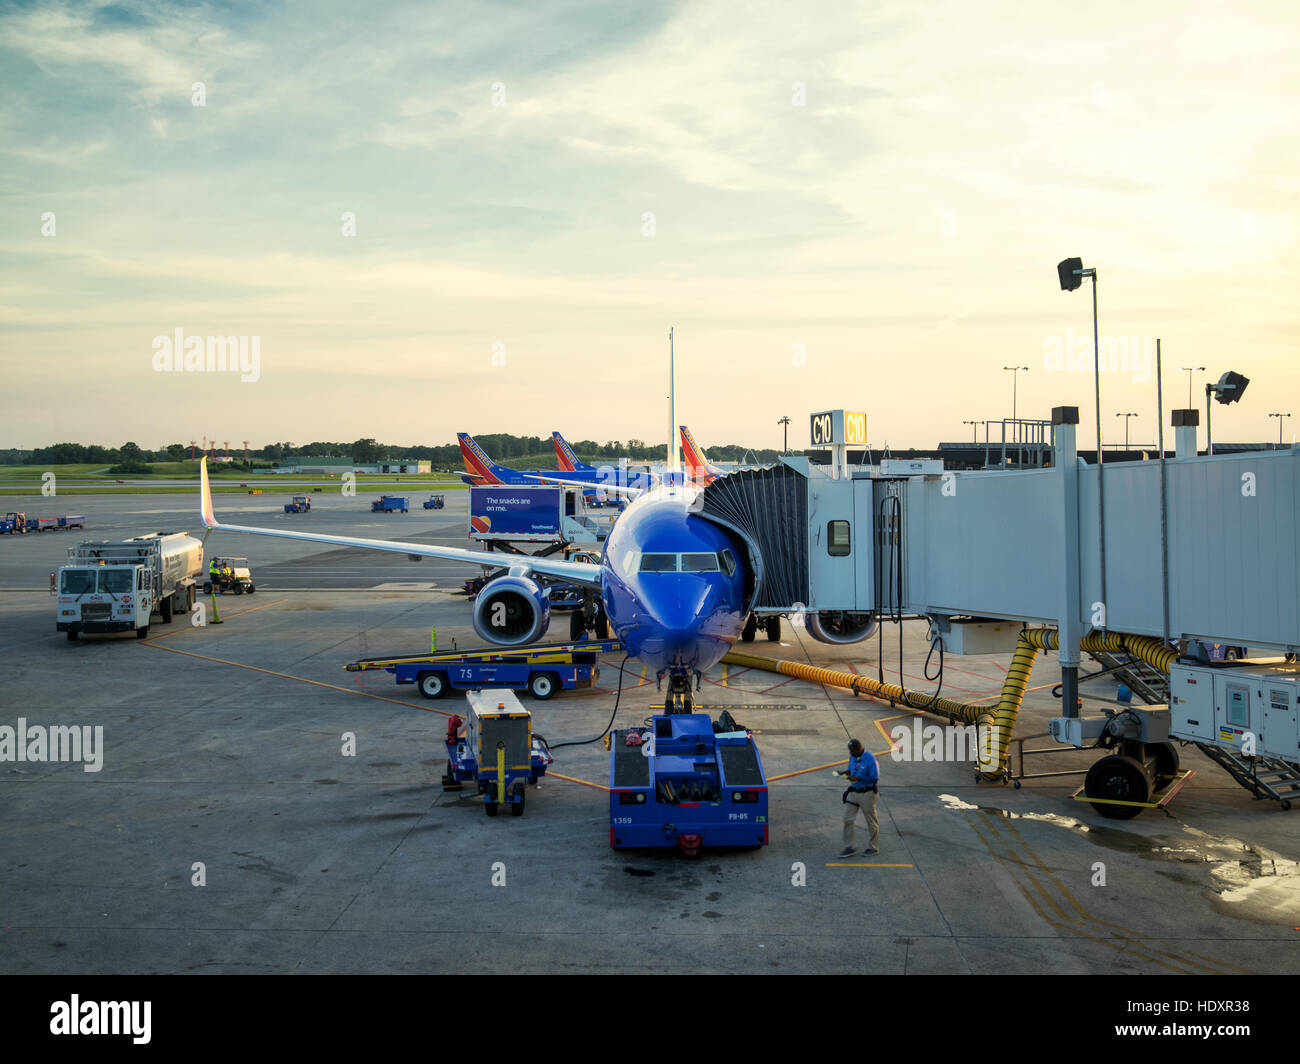 Airplane at an airport terminal gate preparing for an early flight. Baltimore Washington International, BWI. - Stock Image